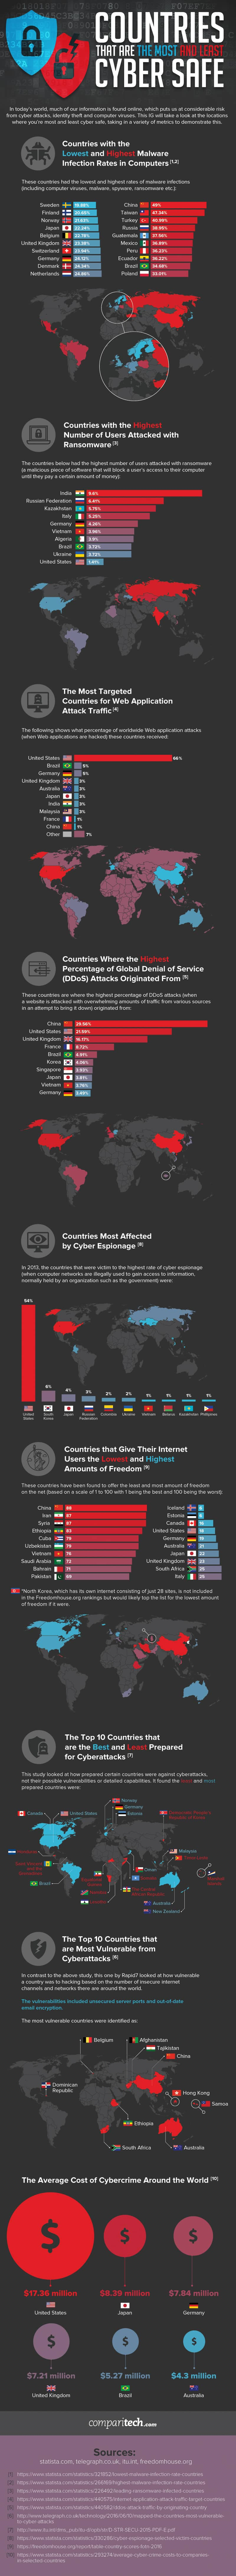 cyber safe countries